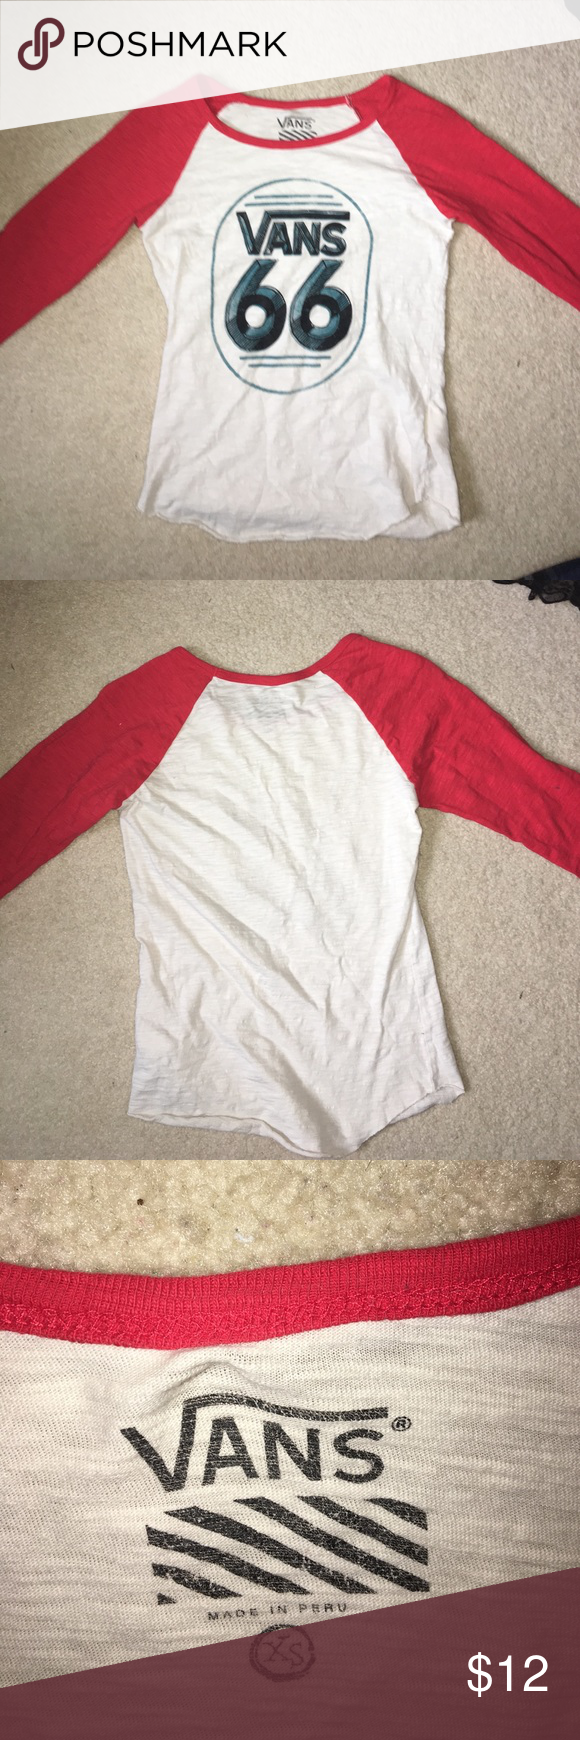 Vans quarter sleeve baseball tee The indicated size is an xs but can definitely fit a small or medium. Worn twice! Practically brand new. Vans Tops